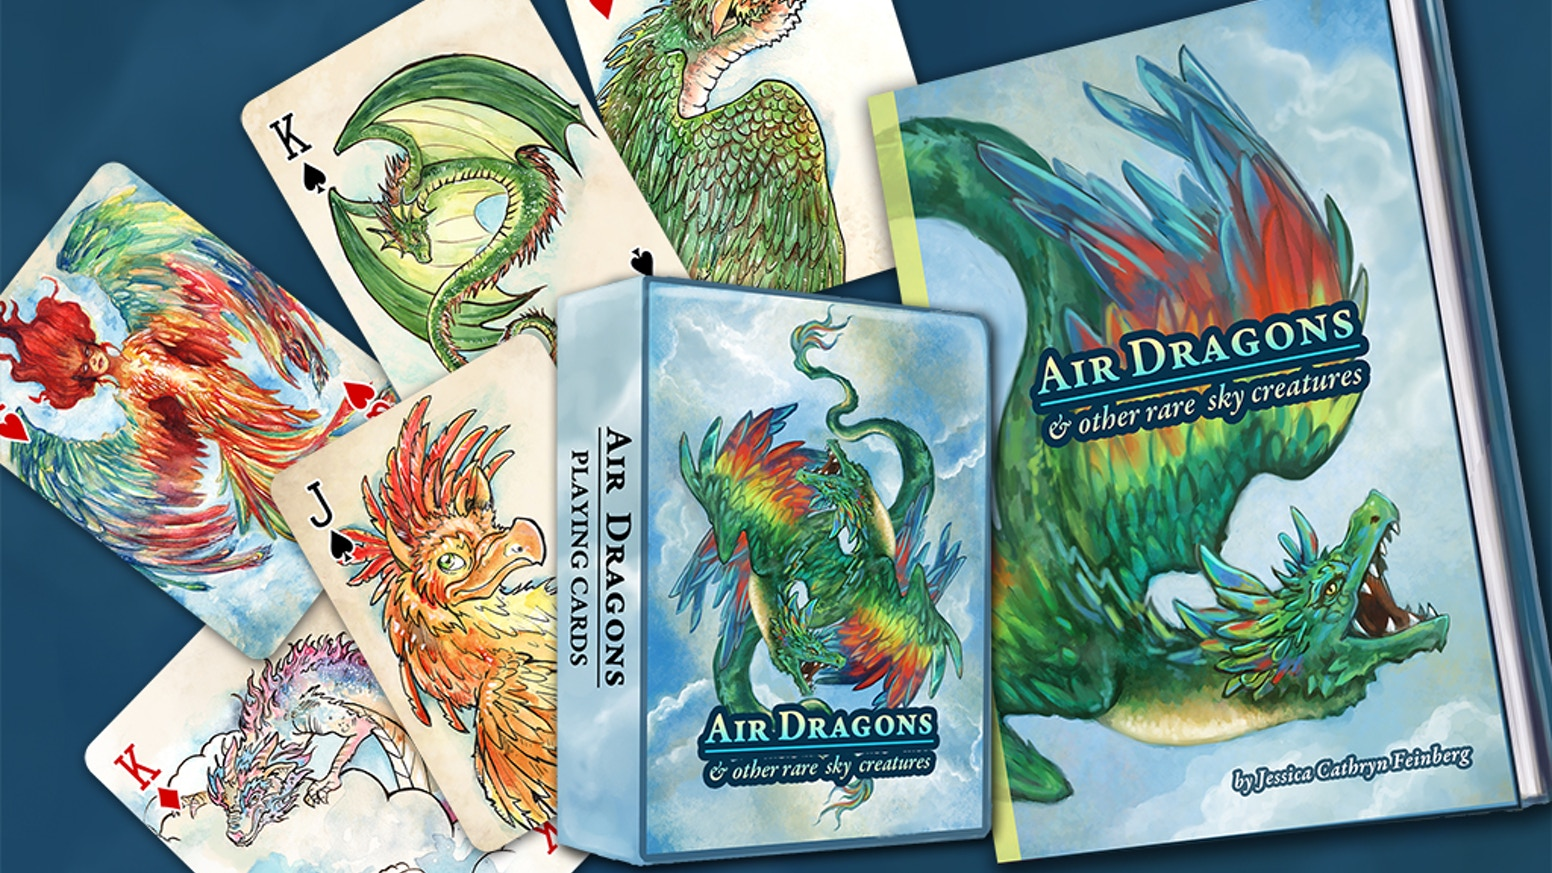 A deck of playing cards, a fully illustrated book, and much more!  Featuring Dragons & other creatures.